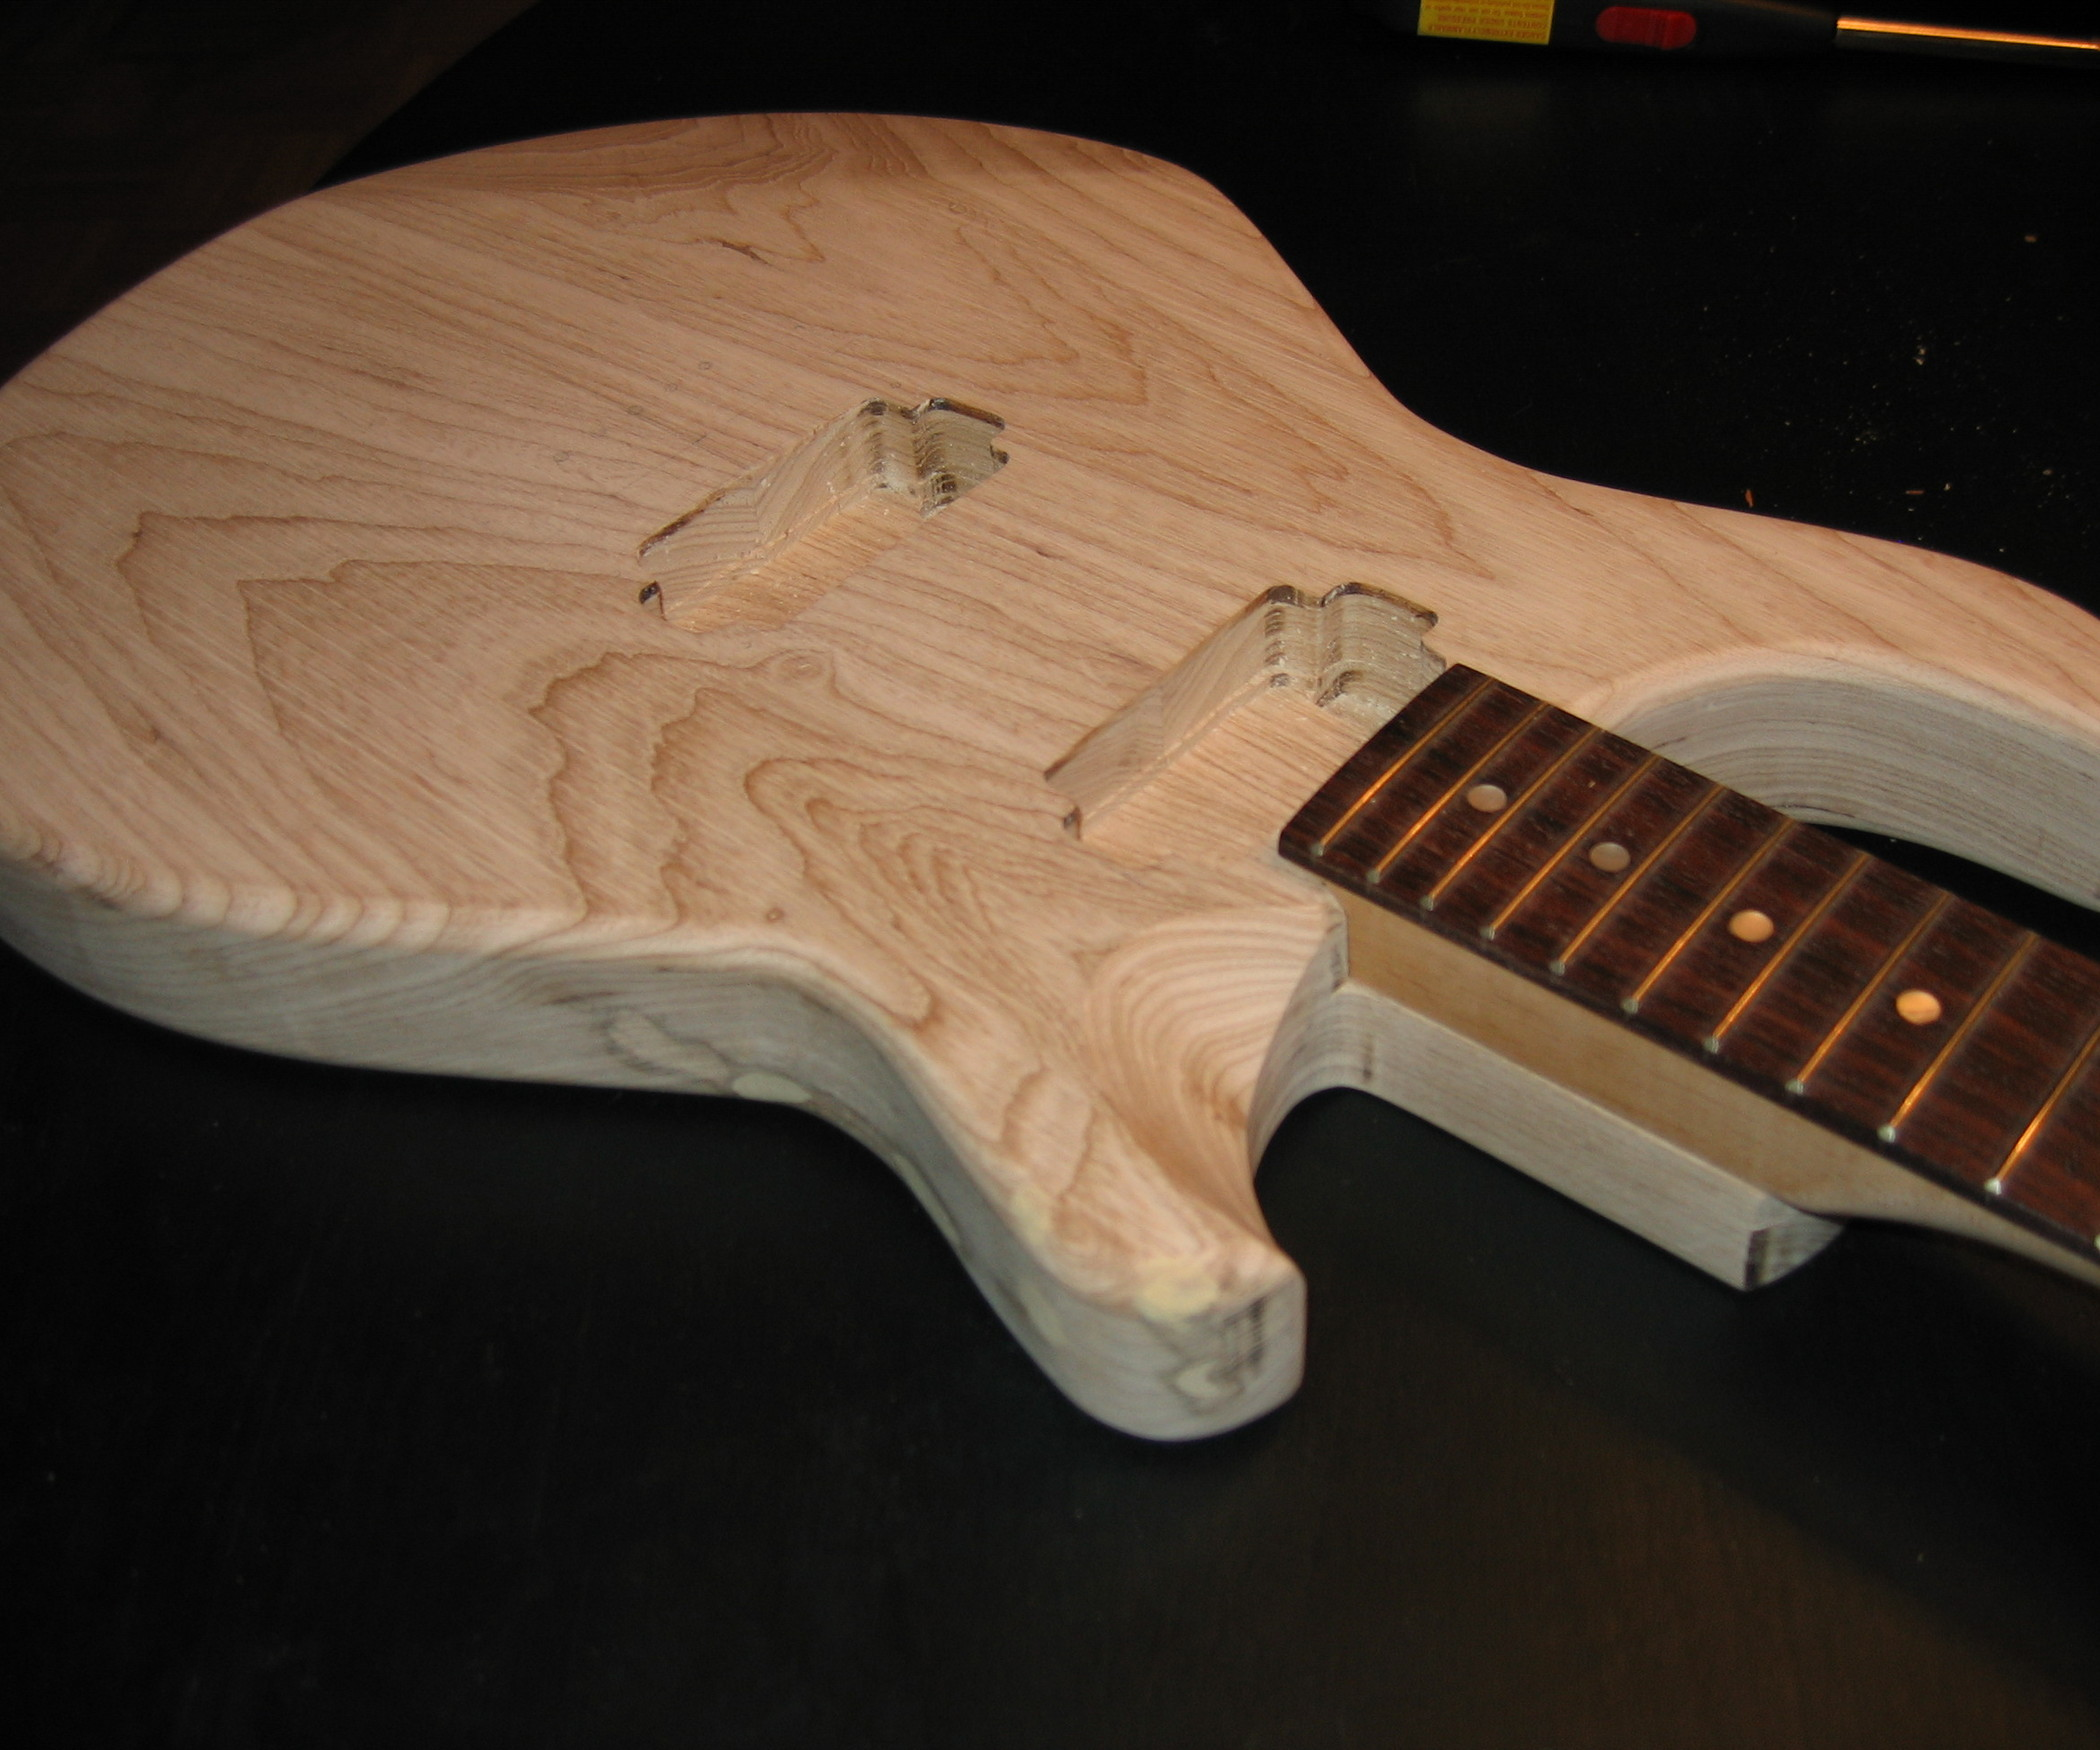 Drawn guitar refinish Steps Your (with Electric 8